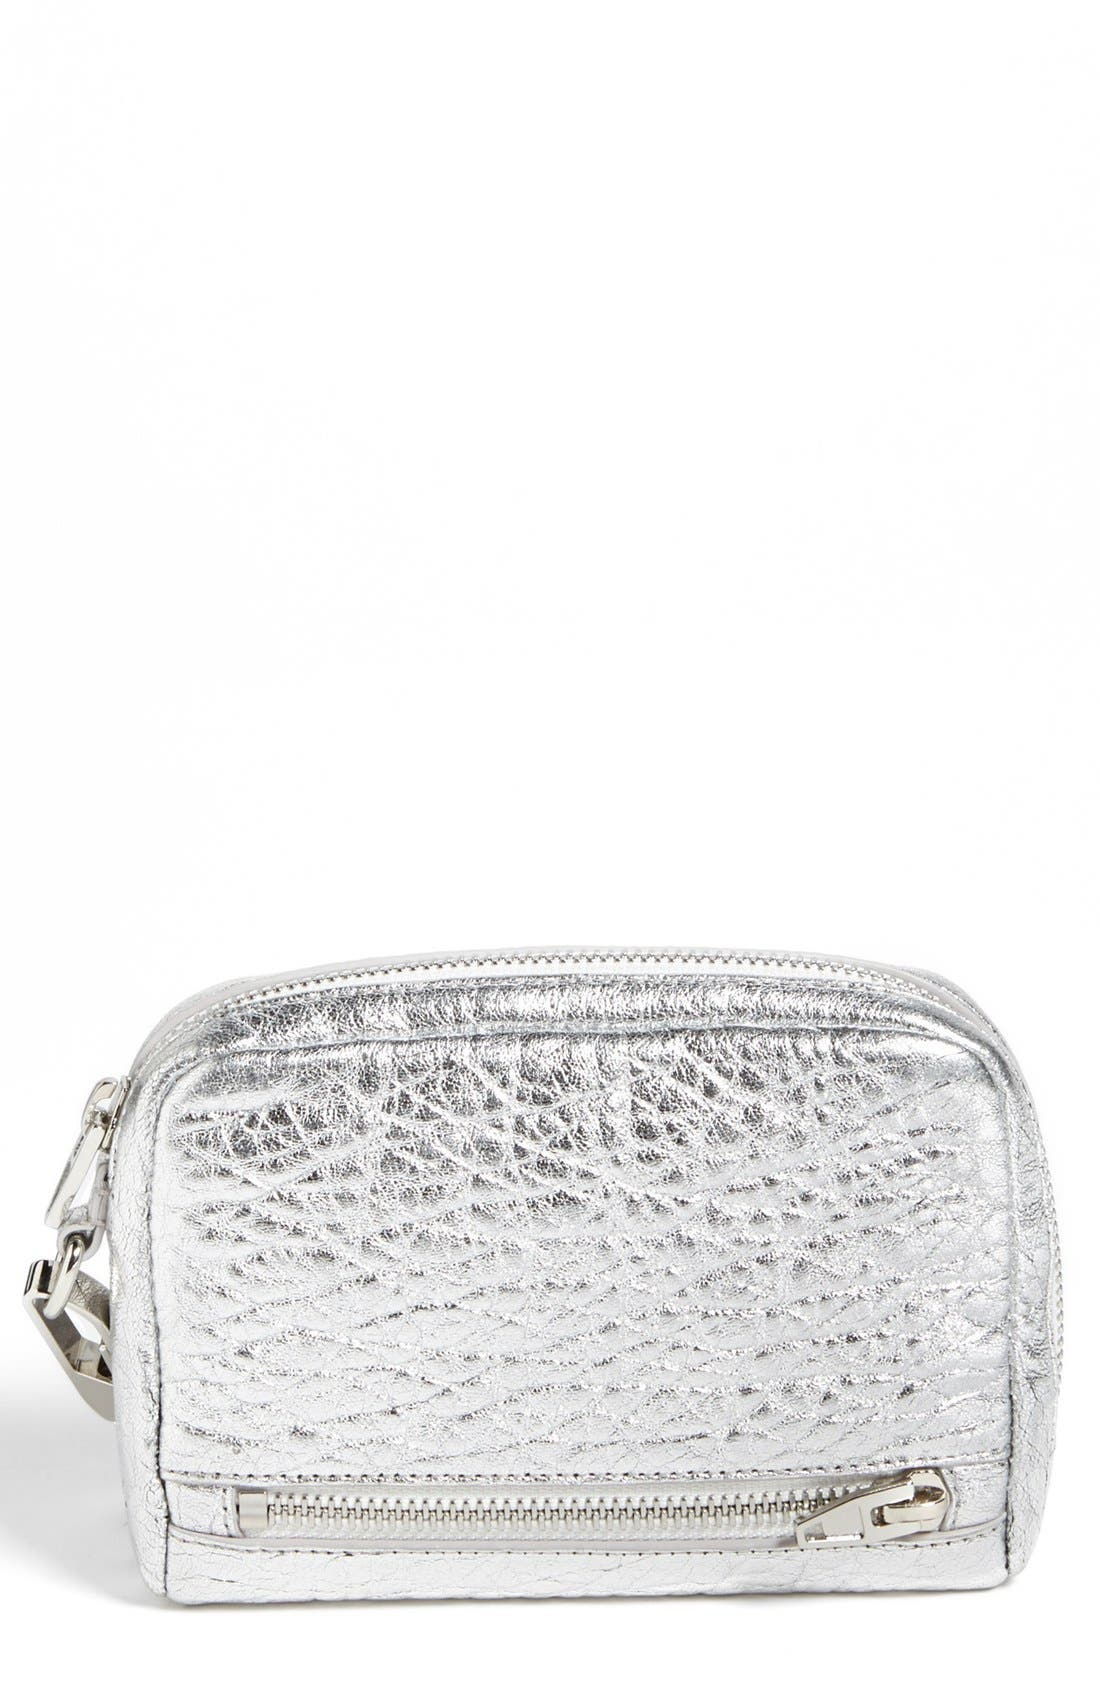 Alternate Image 1 Selected - Alexander Wang 'Fumo - Large' Metallic Leather Wristlet